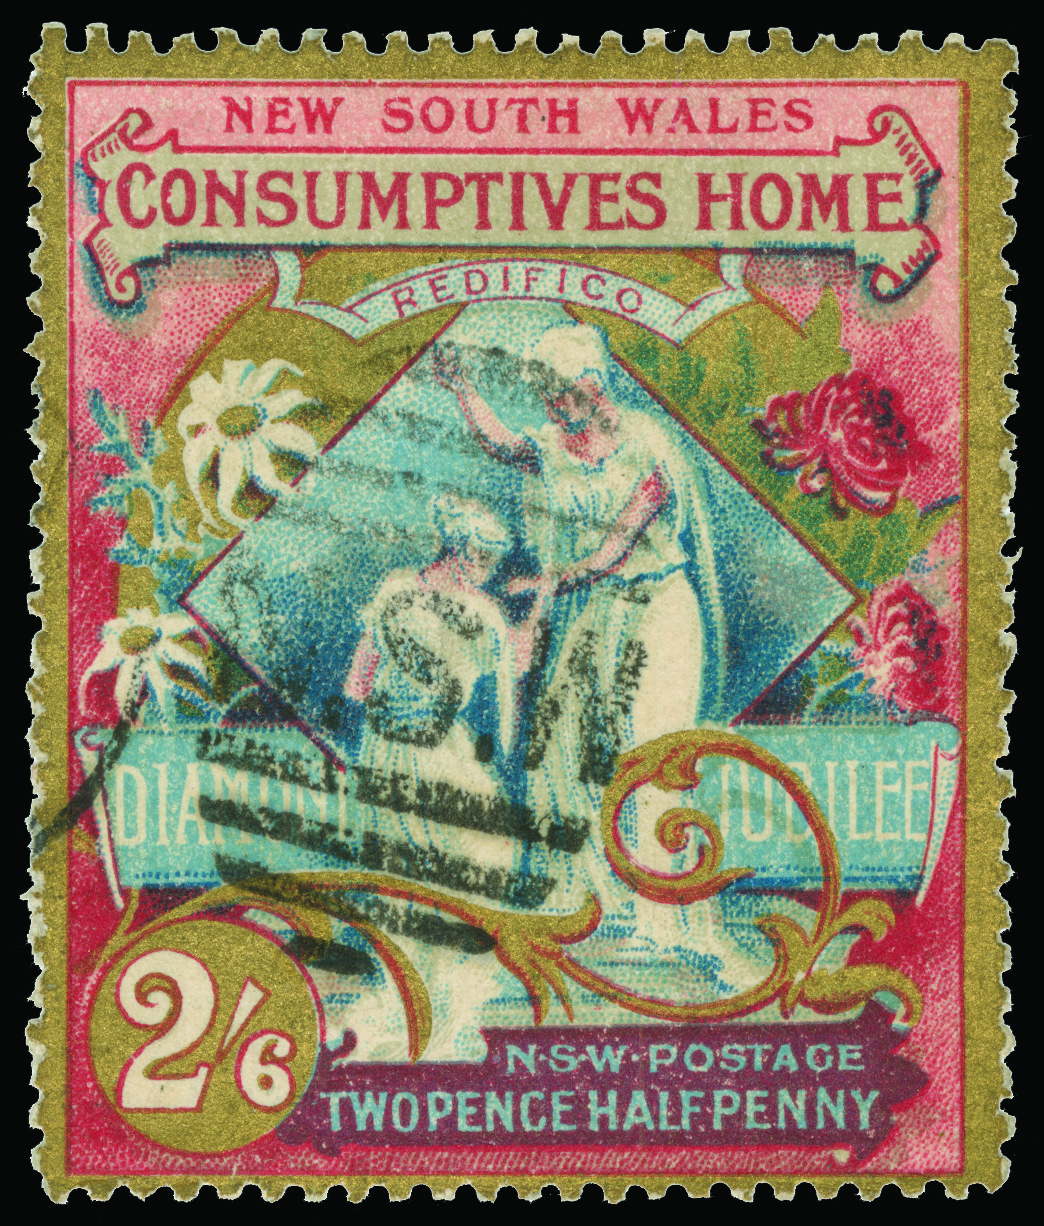 Lot 134 - Australia  -  COLONIAL STAMP CO. Auction #130 - Public Auction